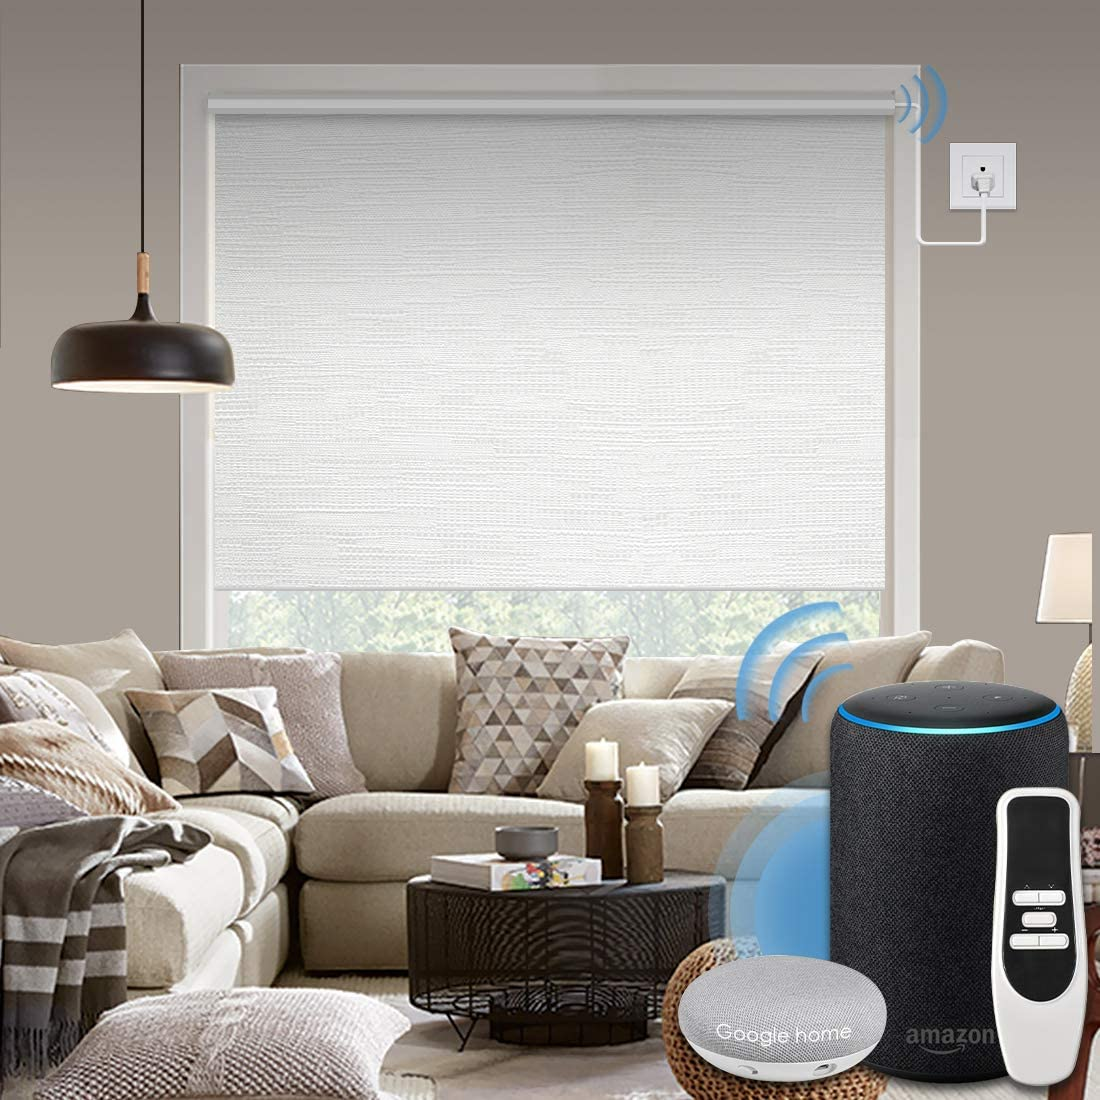 Graywind Motorized 100% Blackout Roller Shade with Alexa Google Smart Home Control Build-in Hardwired Window Shades Thermal Insulated Window Blinds, Customized Size (Jacquard White)